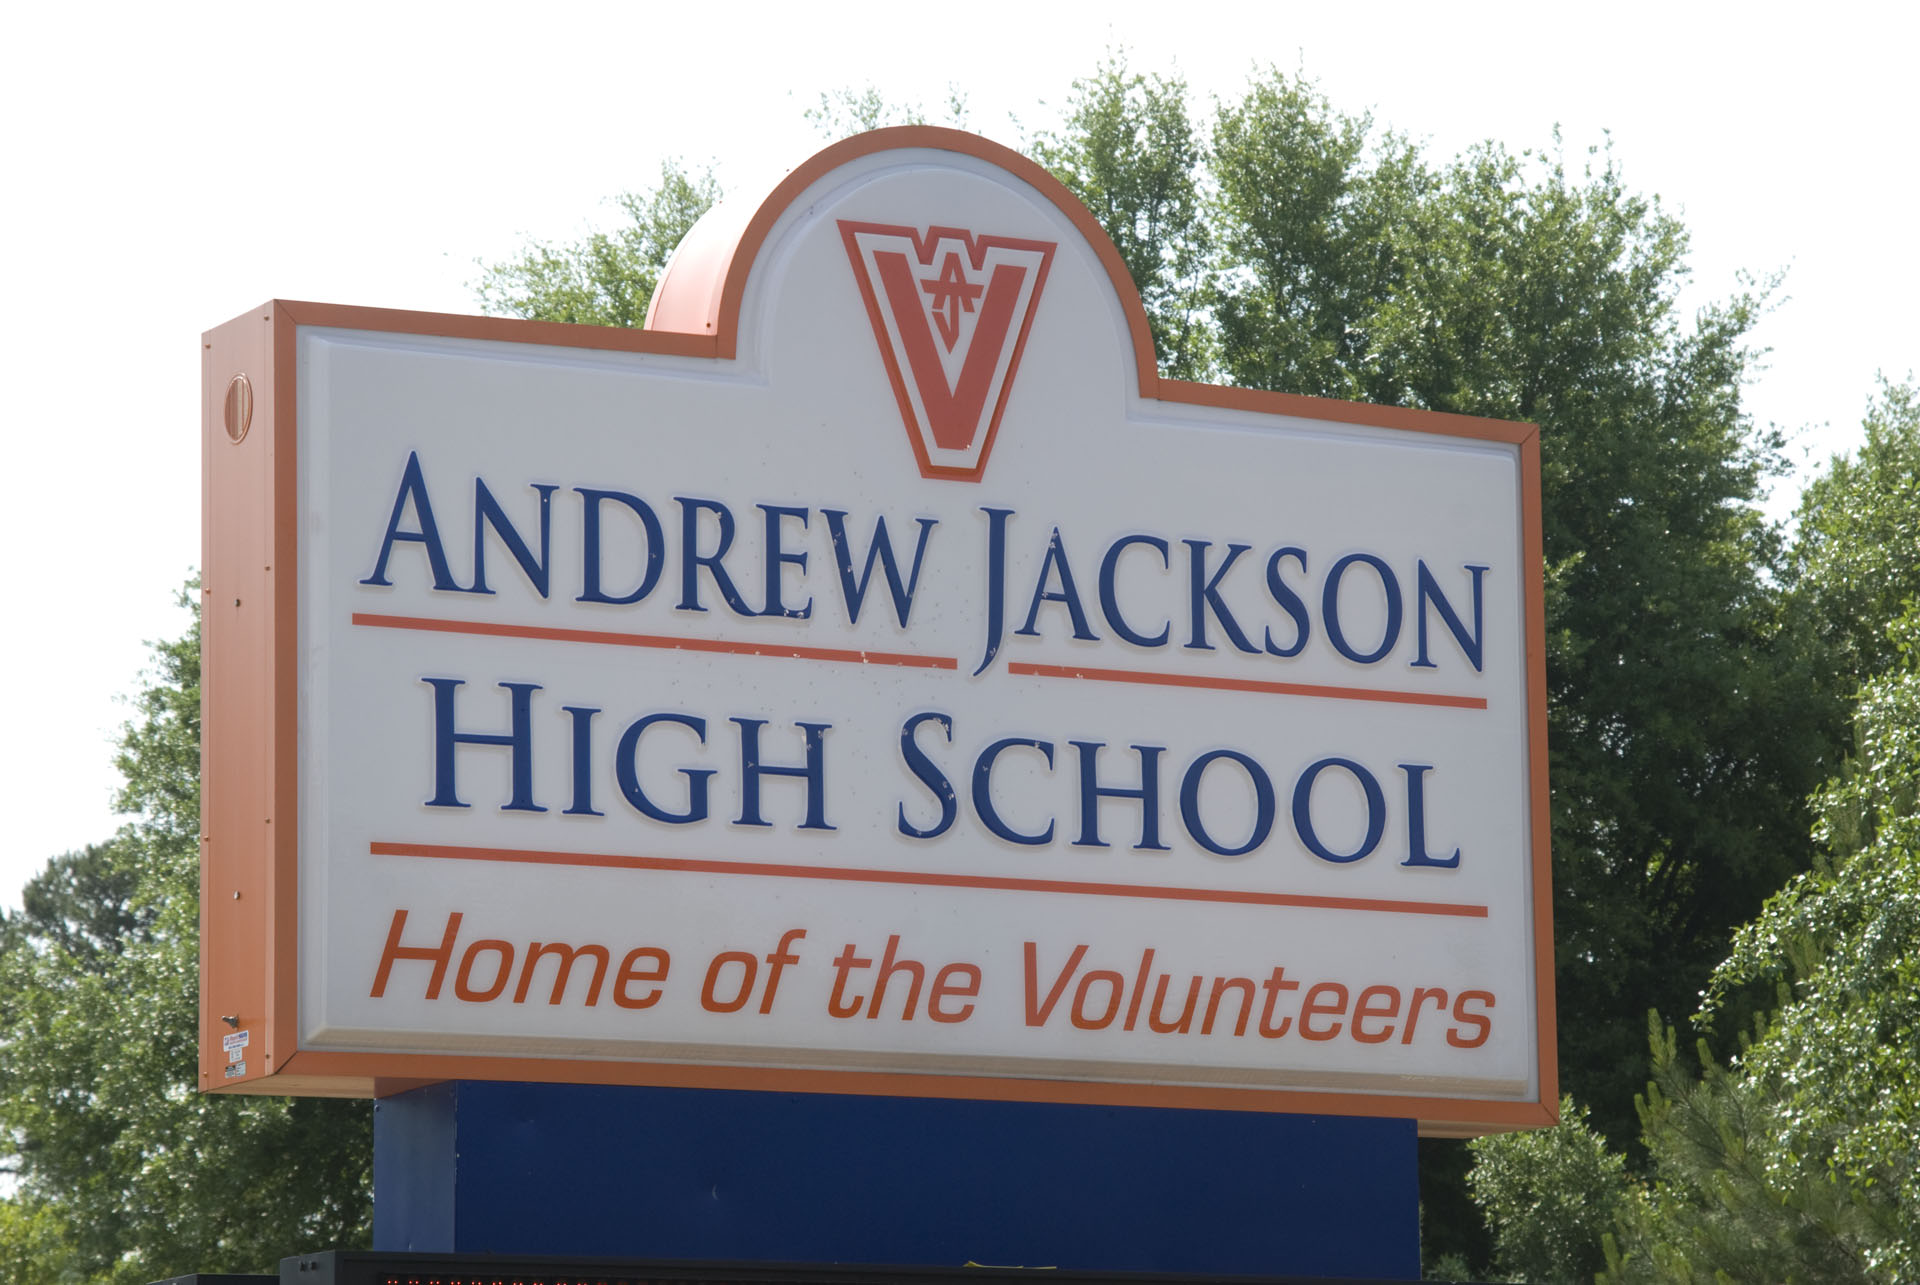 After a two-week voting period, in which Kershaw residents rallied to support Andrew Jackson High School, the community learned that their local school had been selected as a winner in Rack Room Shoes' Save the Athletes Challenge. The school received more than 4,600 votes.